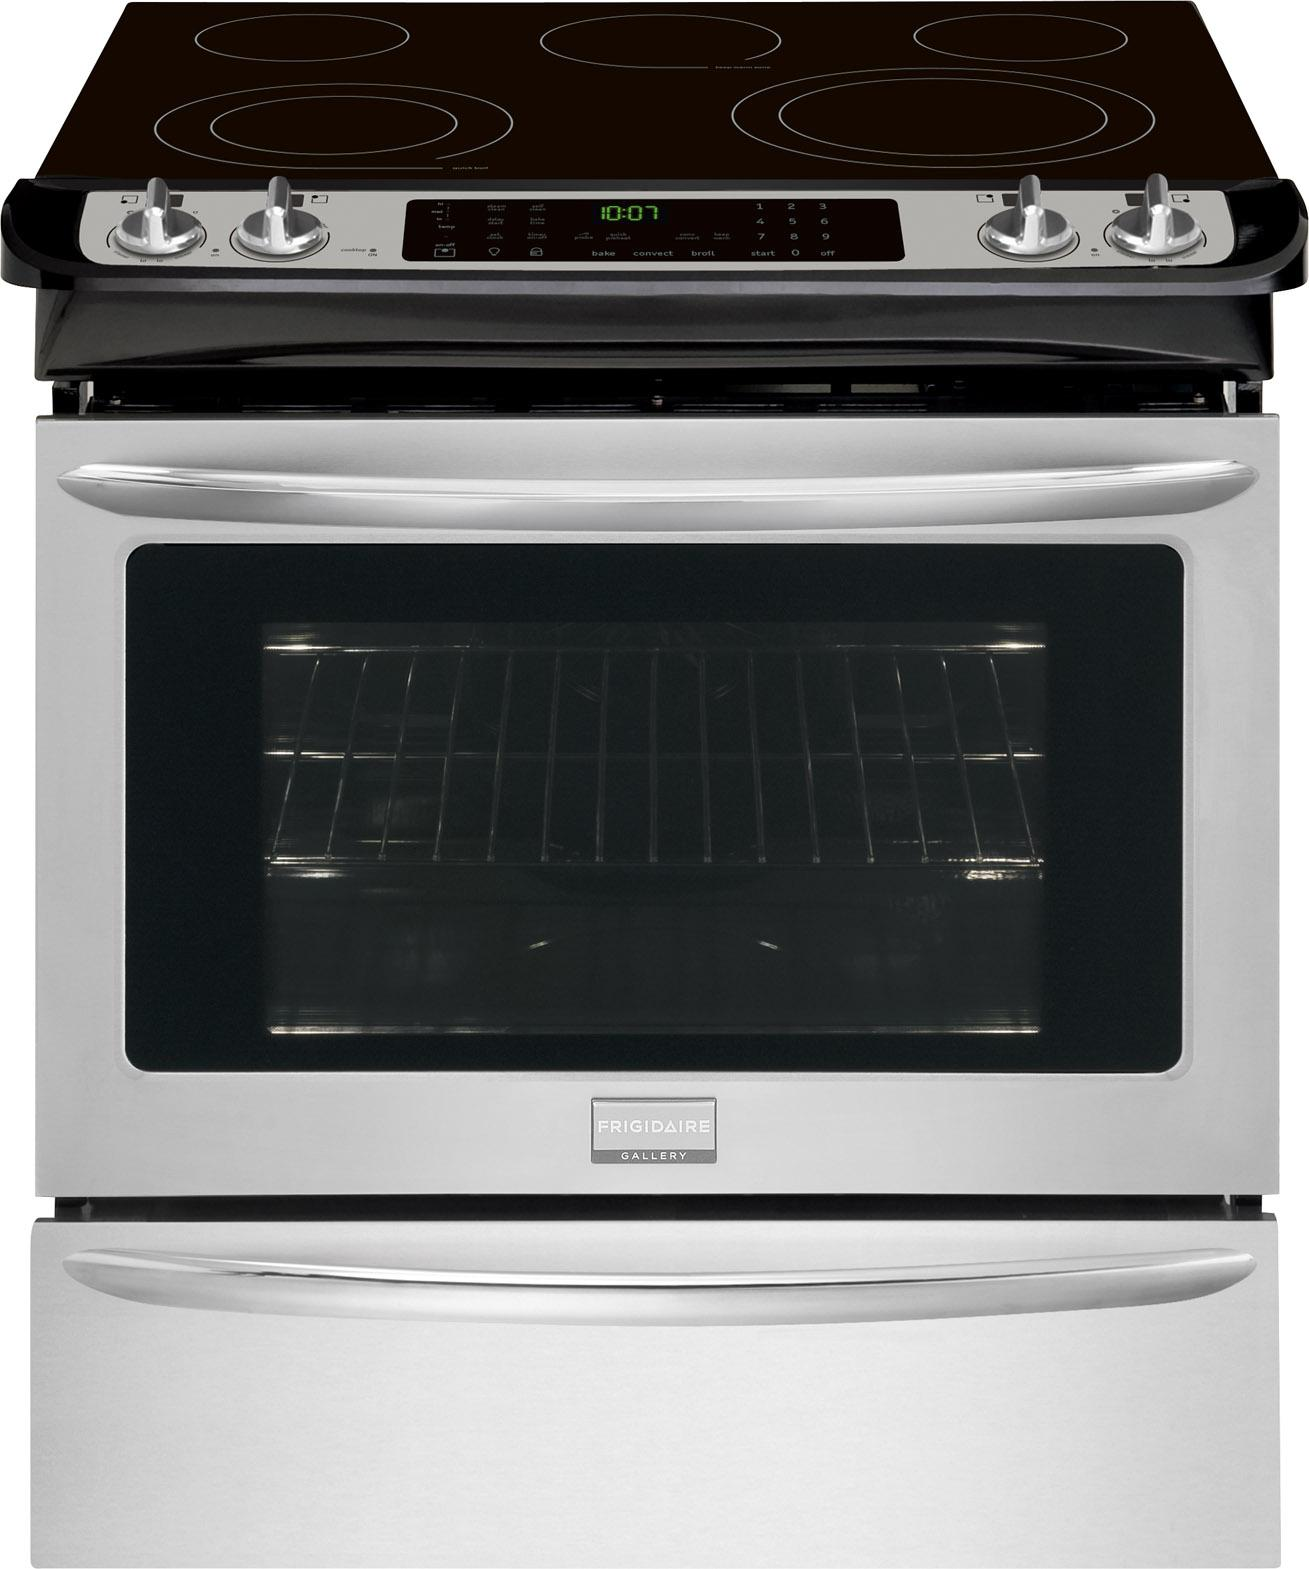 "Frigidaire Frigidaire Gallery Electric Ranges 30"" Slide-In Electric Range - Item Number: FGES3065PF"